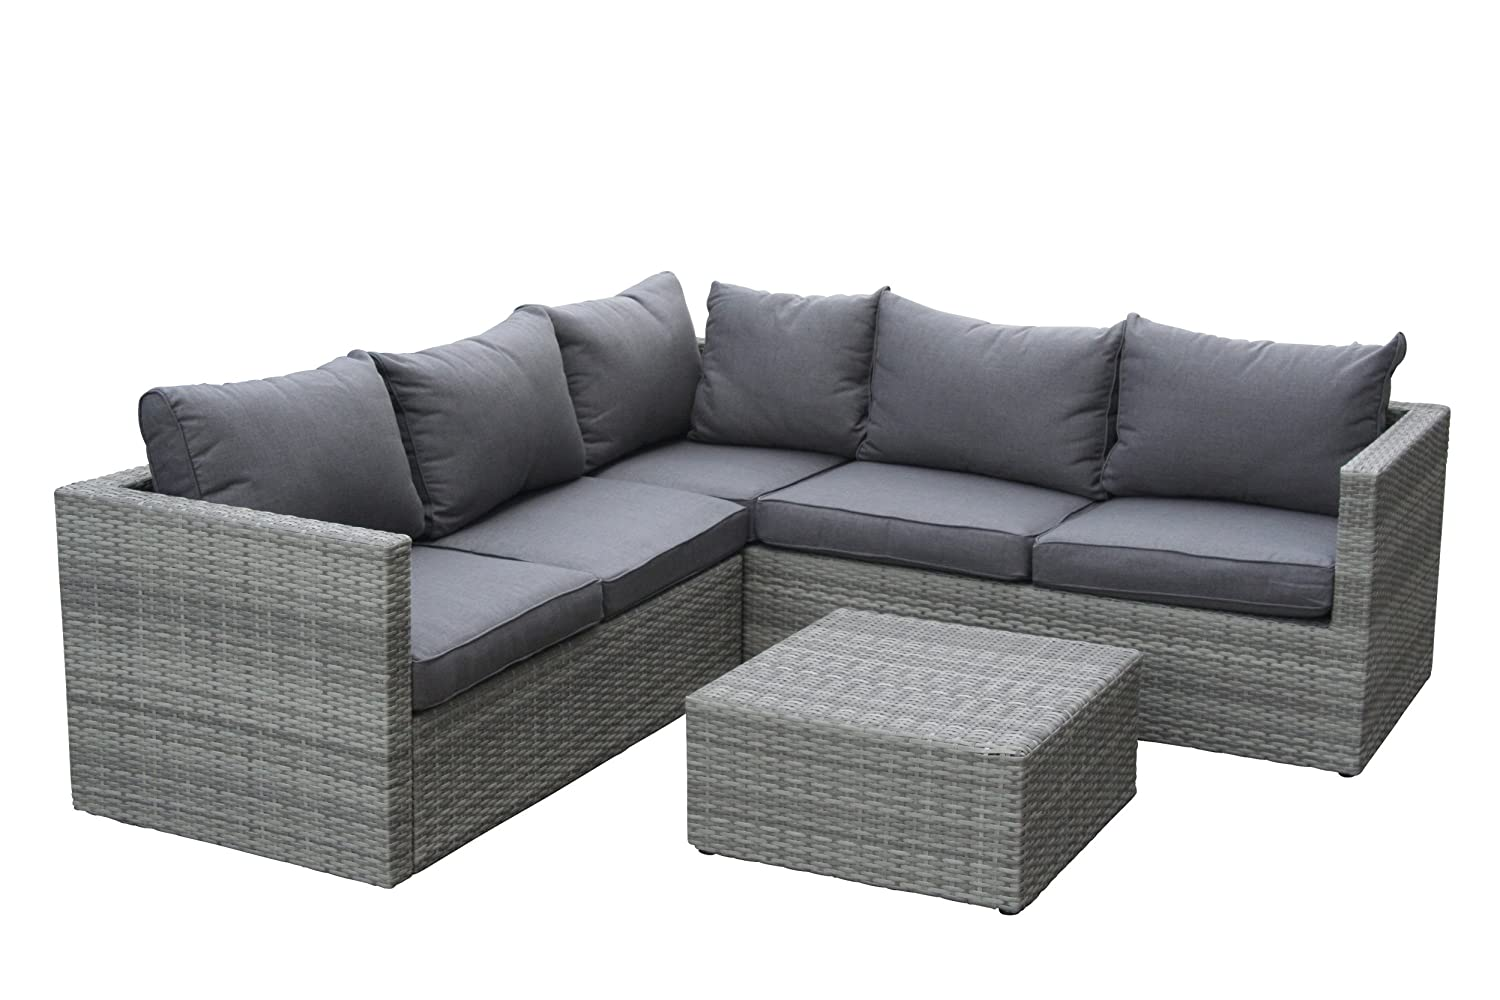 poly rattan sofa lounge set malta grau gartenm bel set. Black Bedroom Furniture Sets. Home Design Ideas